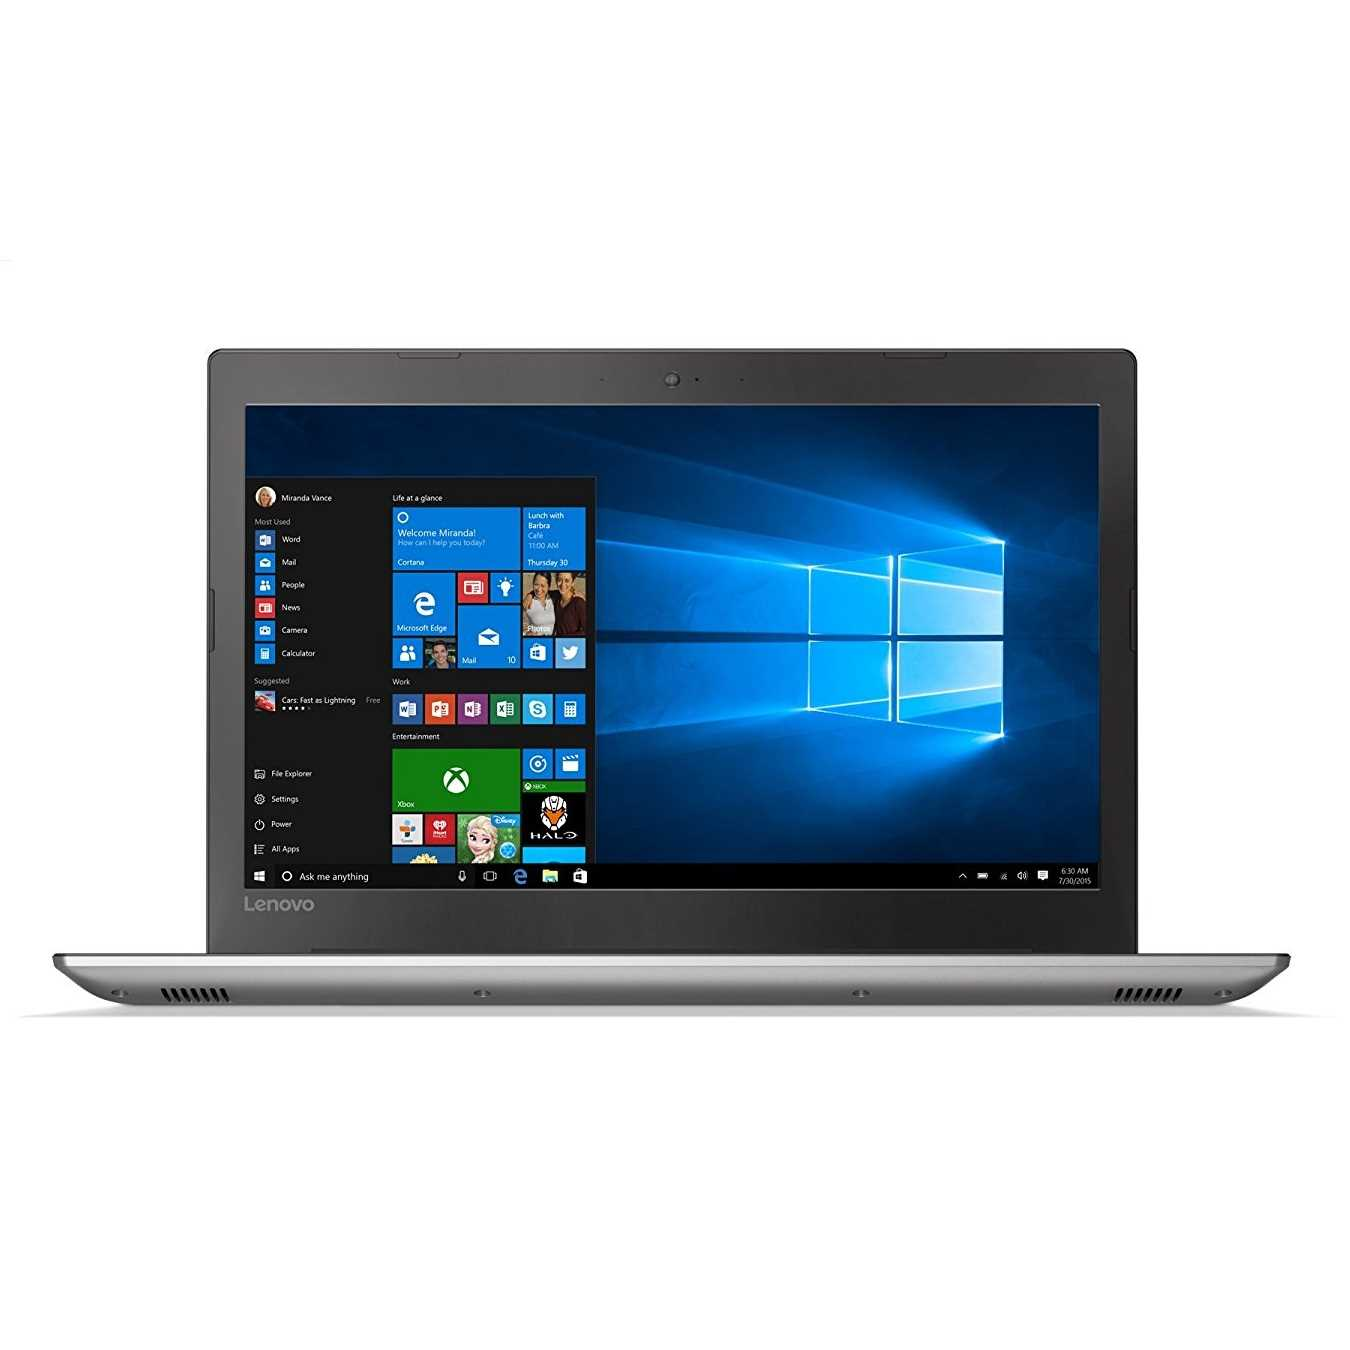 Lenovo IdeaPad 520 (80YL00R9IN) Laptop